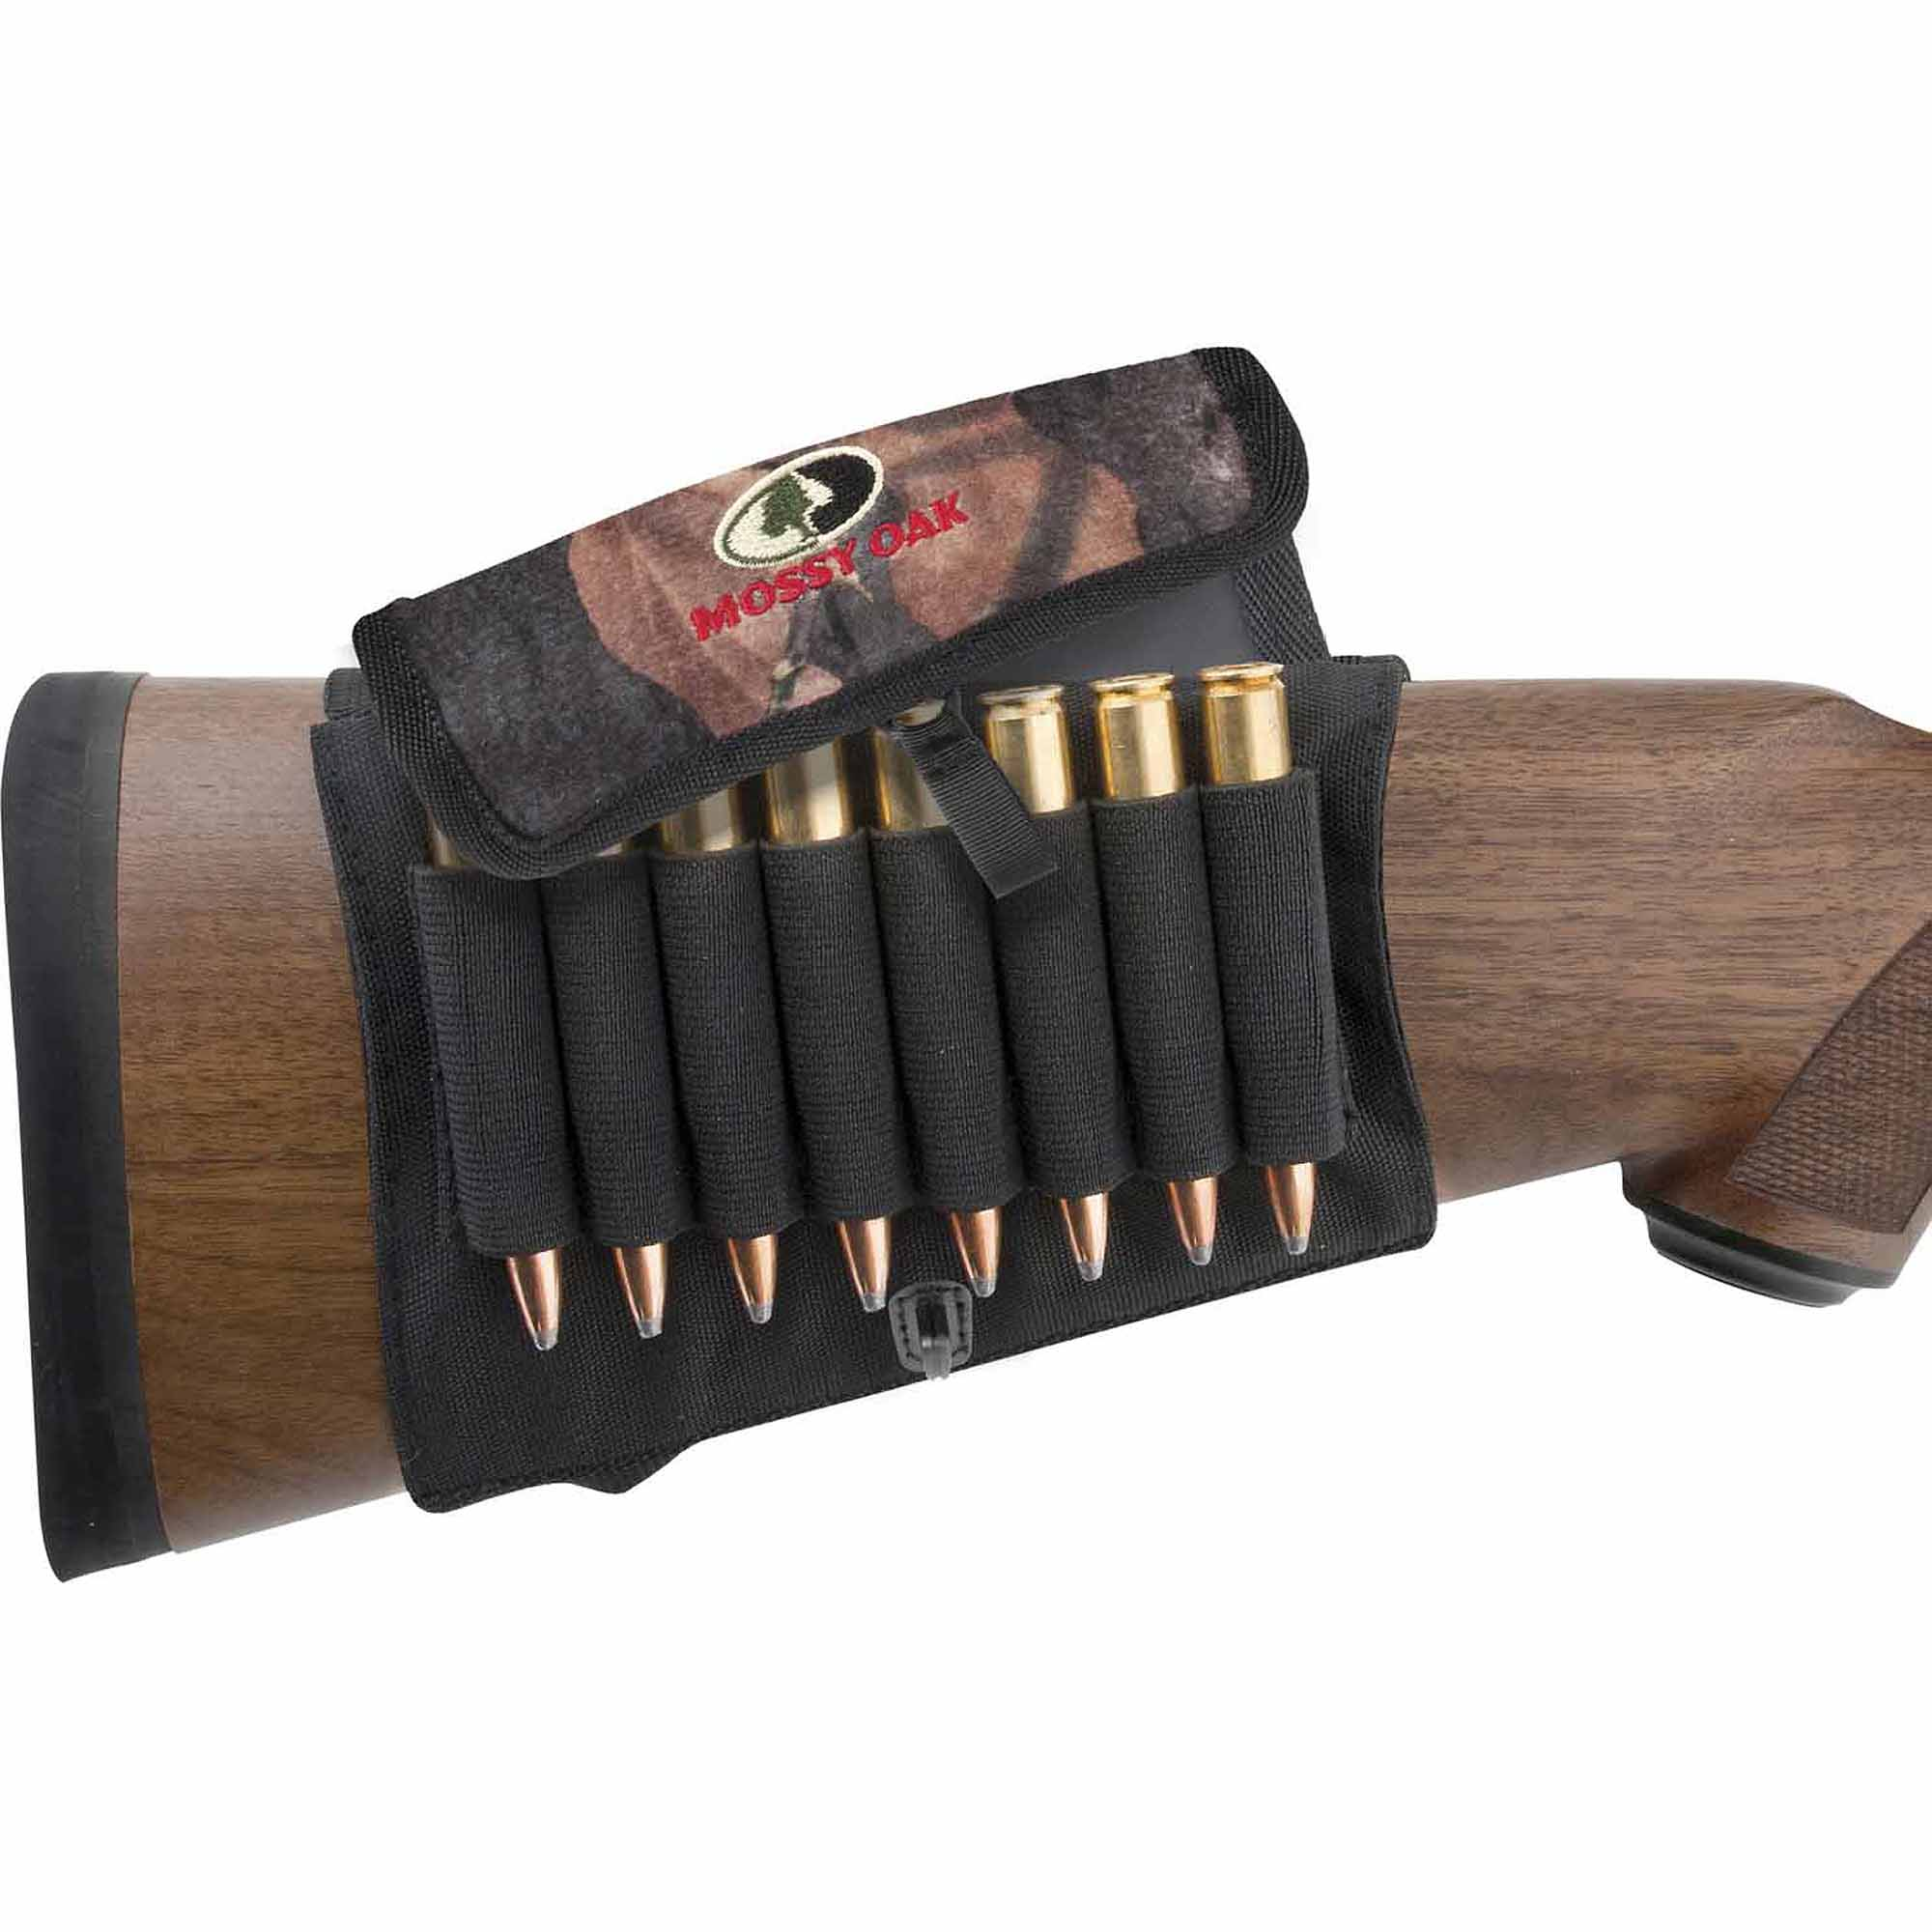 Mossy Oak Buttstock Rifle Shell Holder with Cover